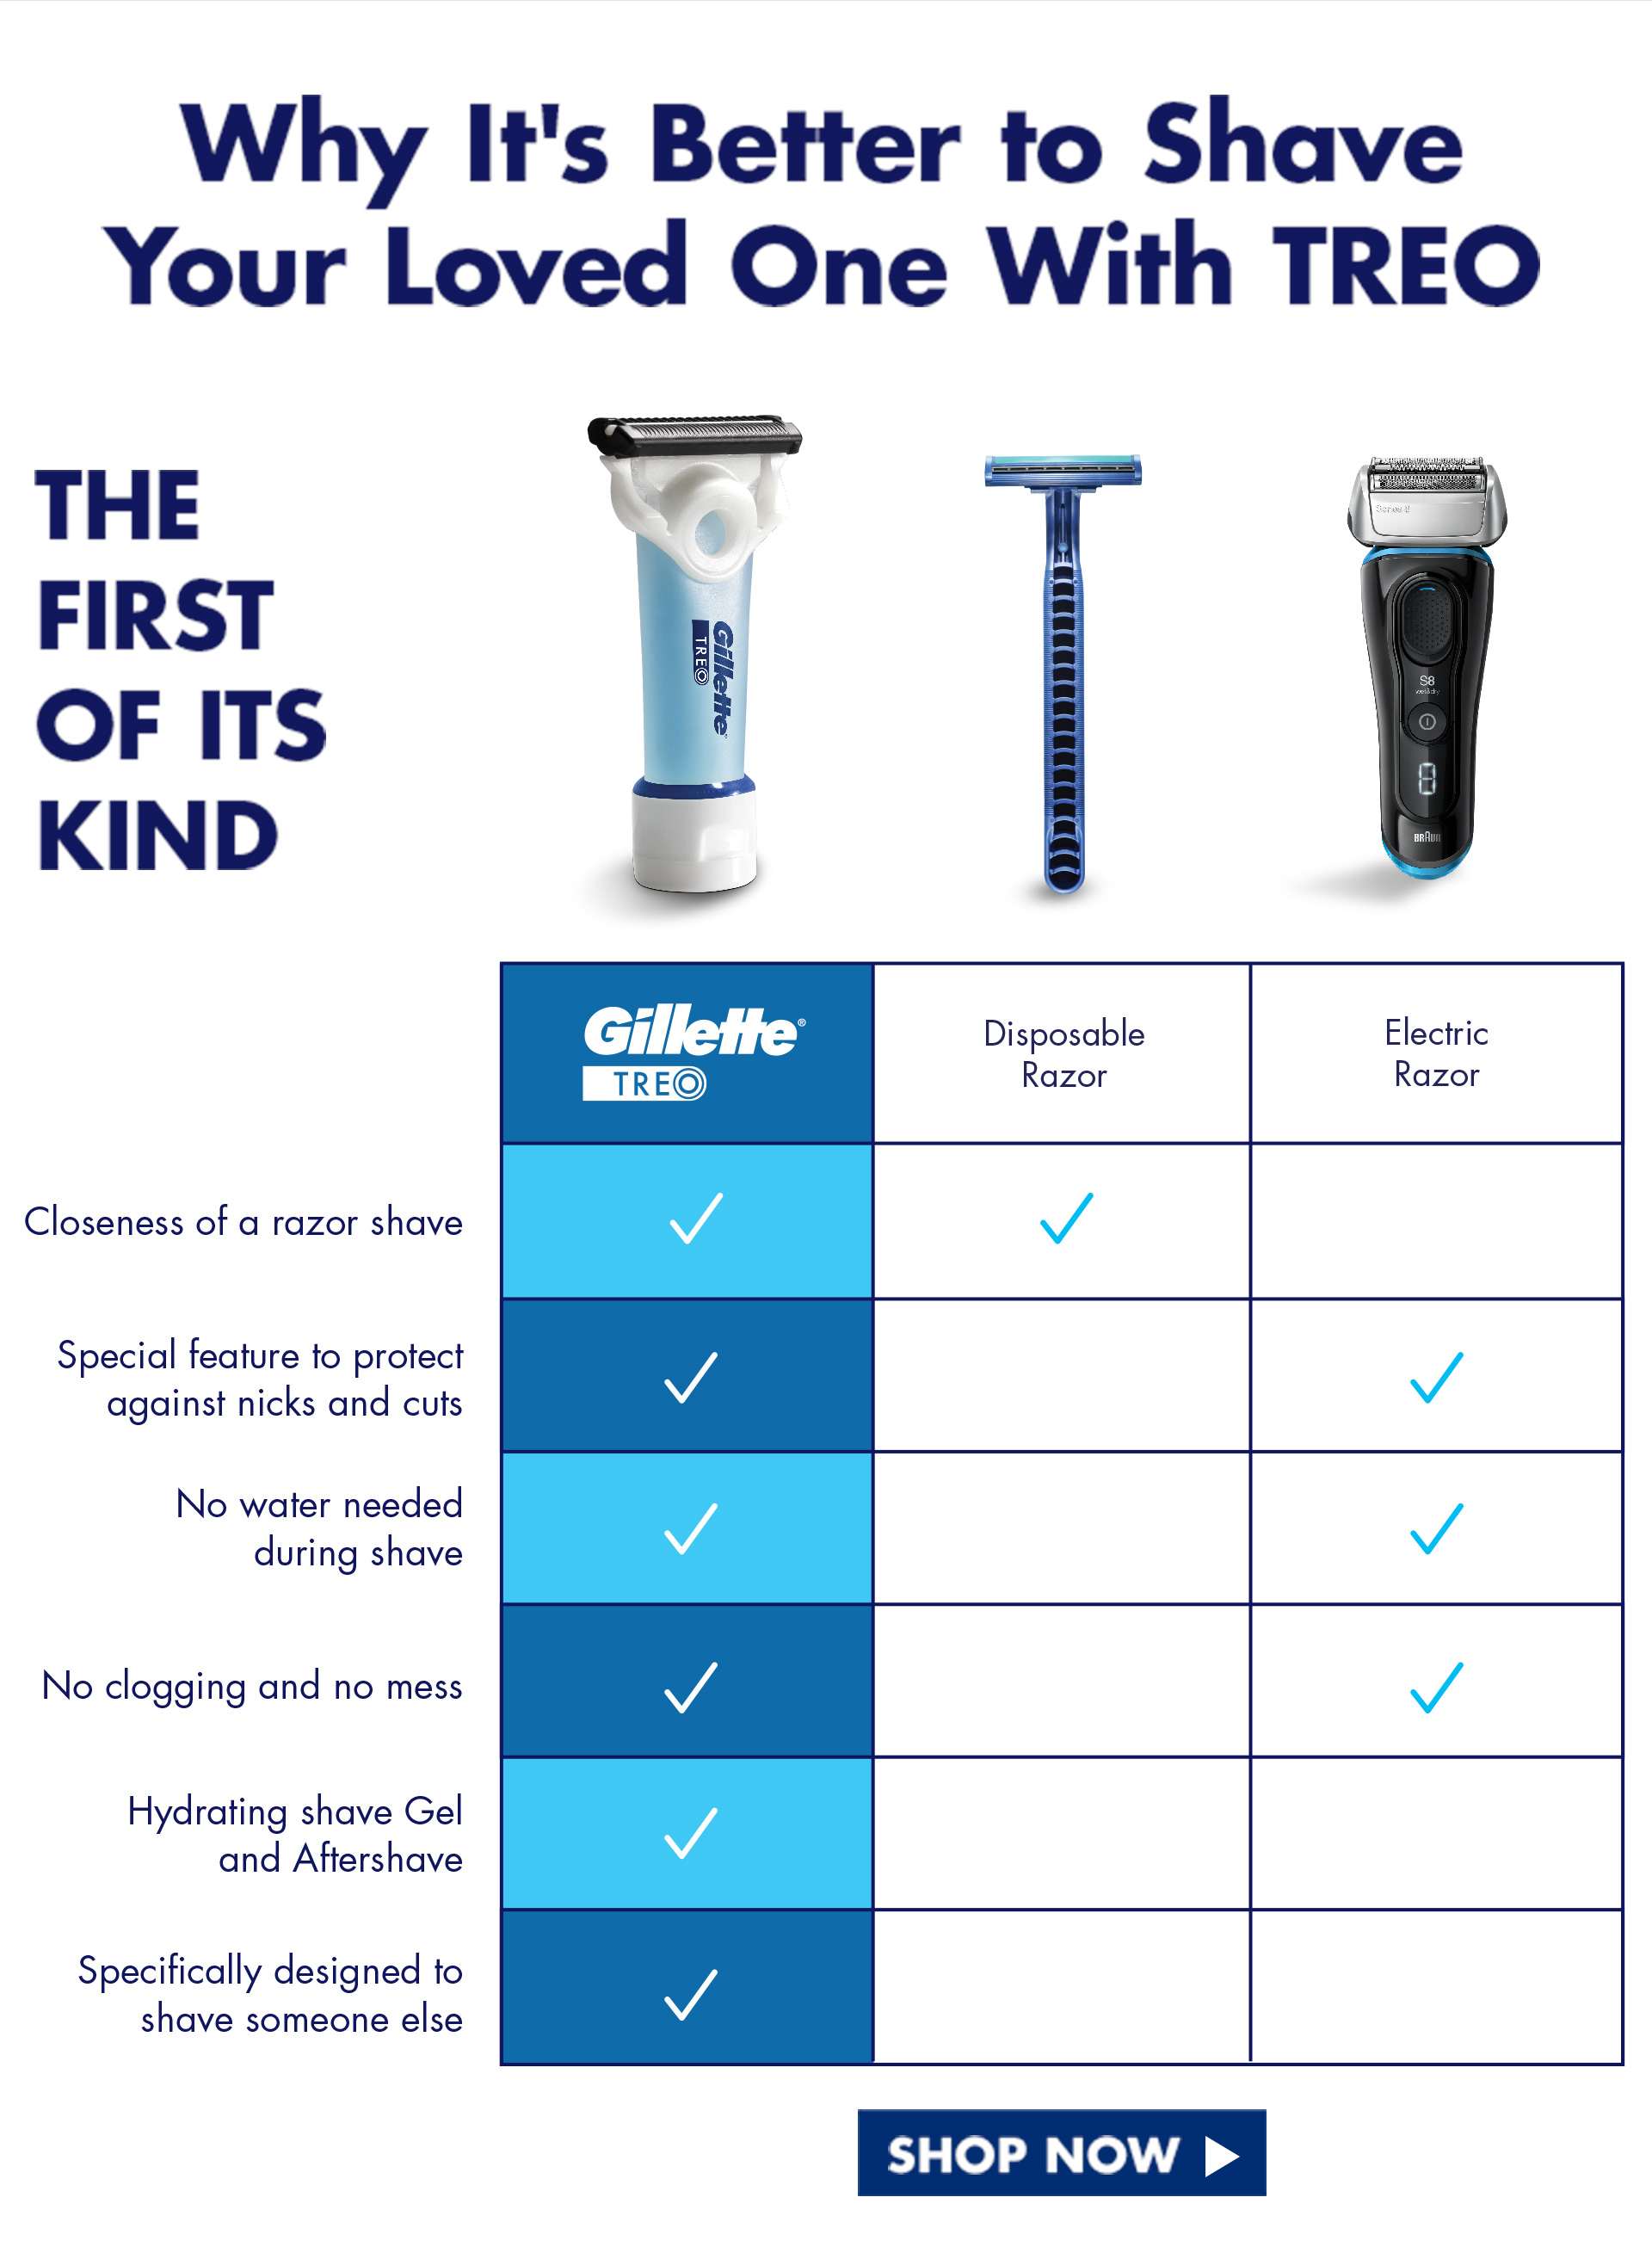 Why it's better to shave your loved one with TREO. The first of its kind. Closeness of a razor shave. Special feature to protect against nicks and cuts. No water needed during shave. No clogging and no mess. Hydrating shave Gel and Aftershave. Specifically designed to shave someone else. Shop now.